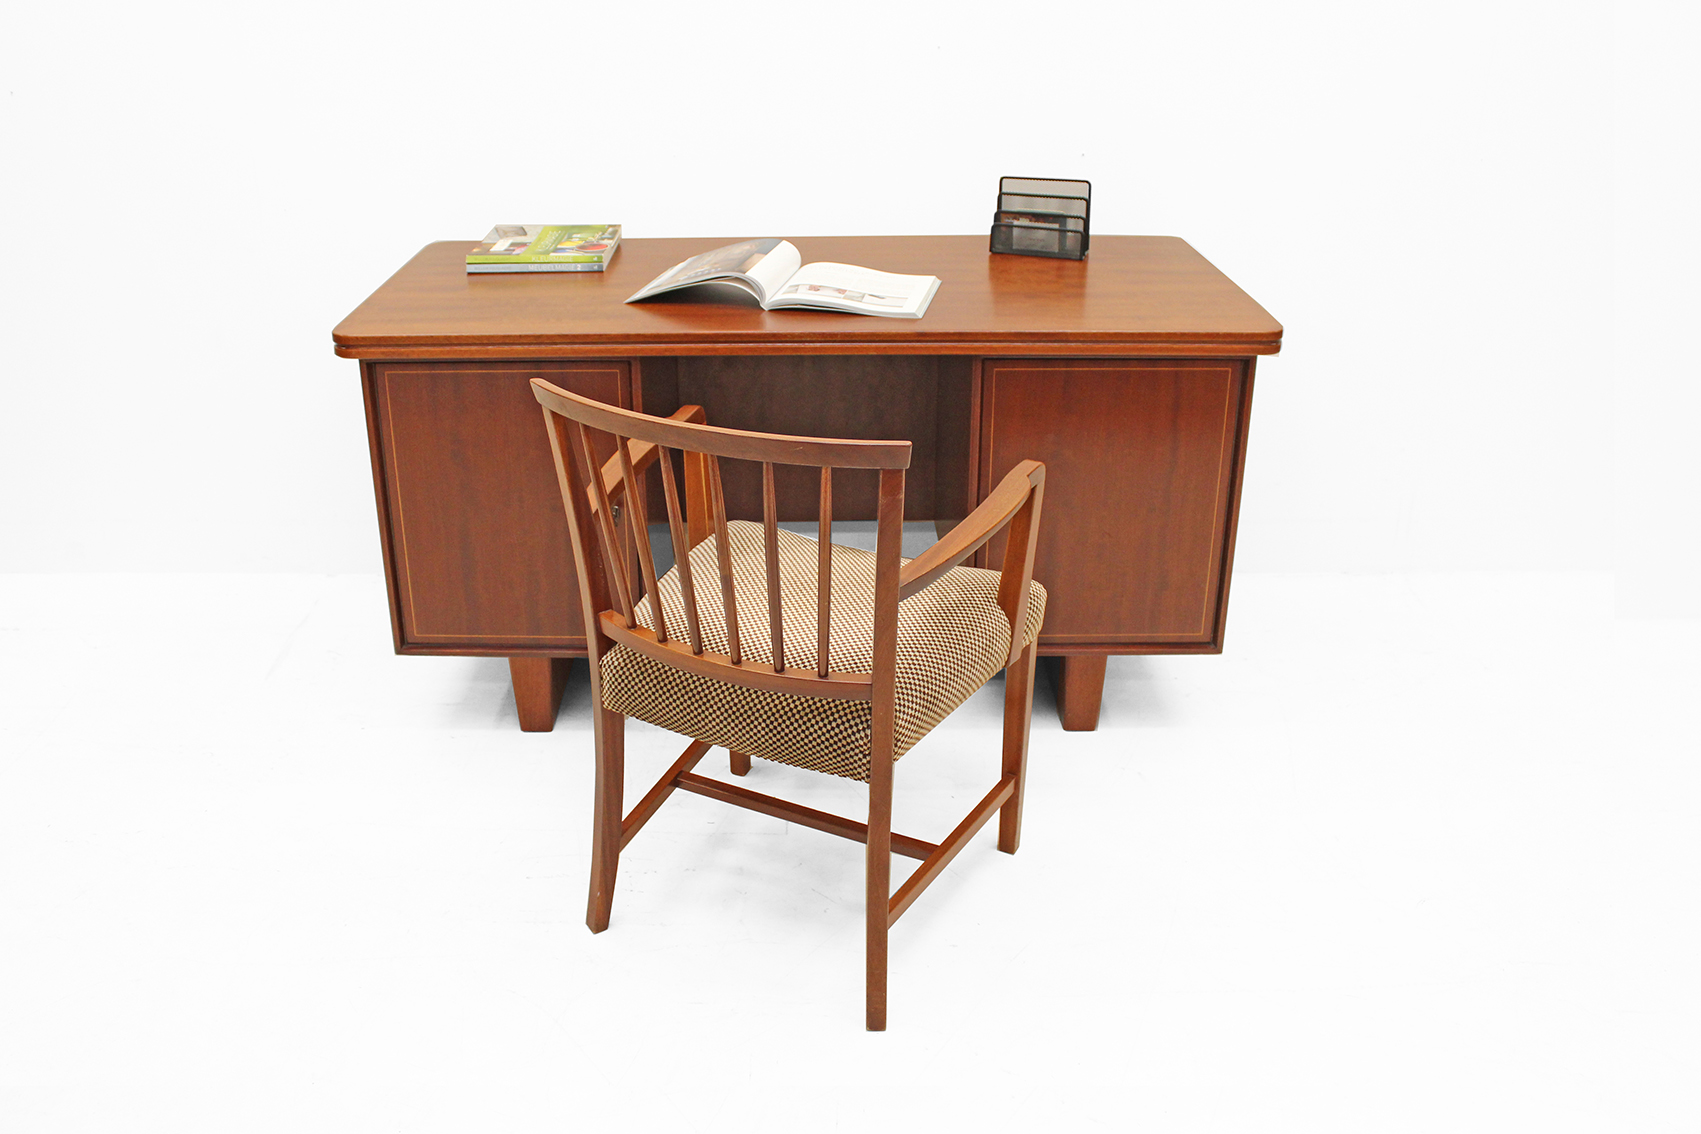 Late fifties desk by Formule meubelen